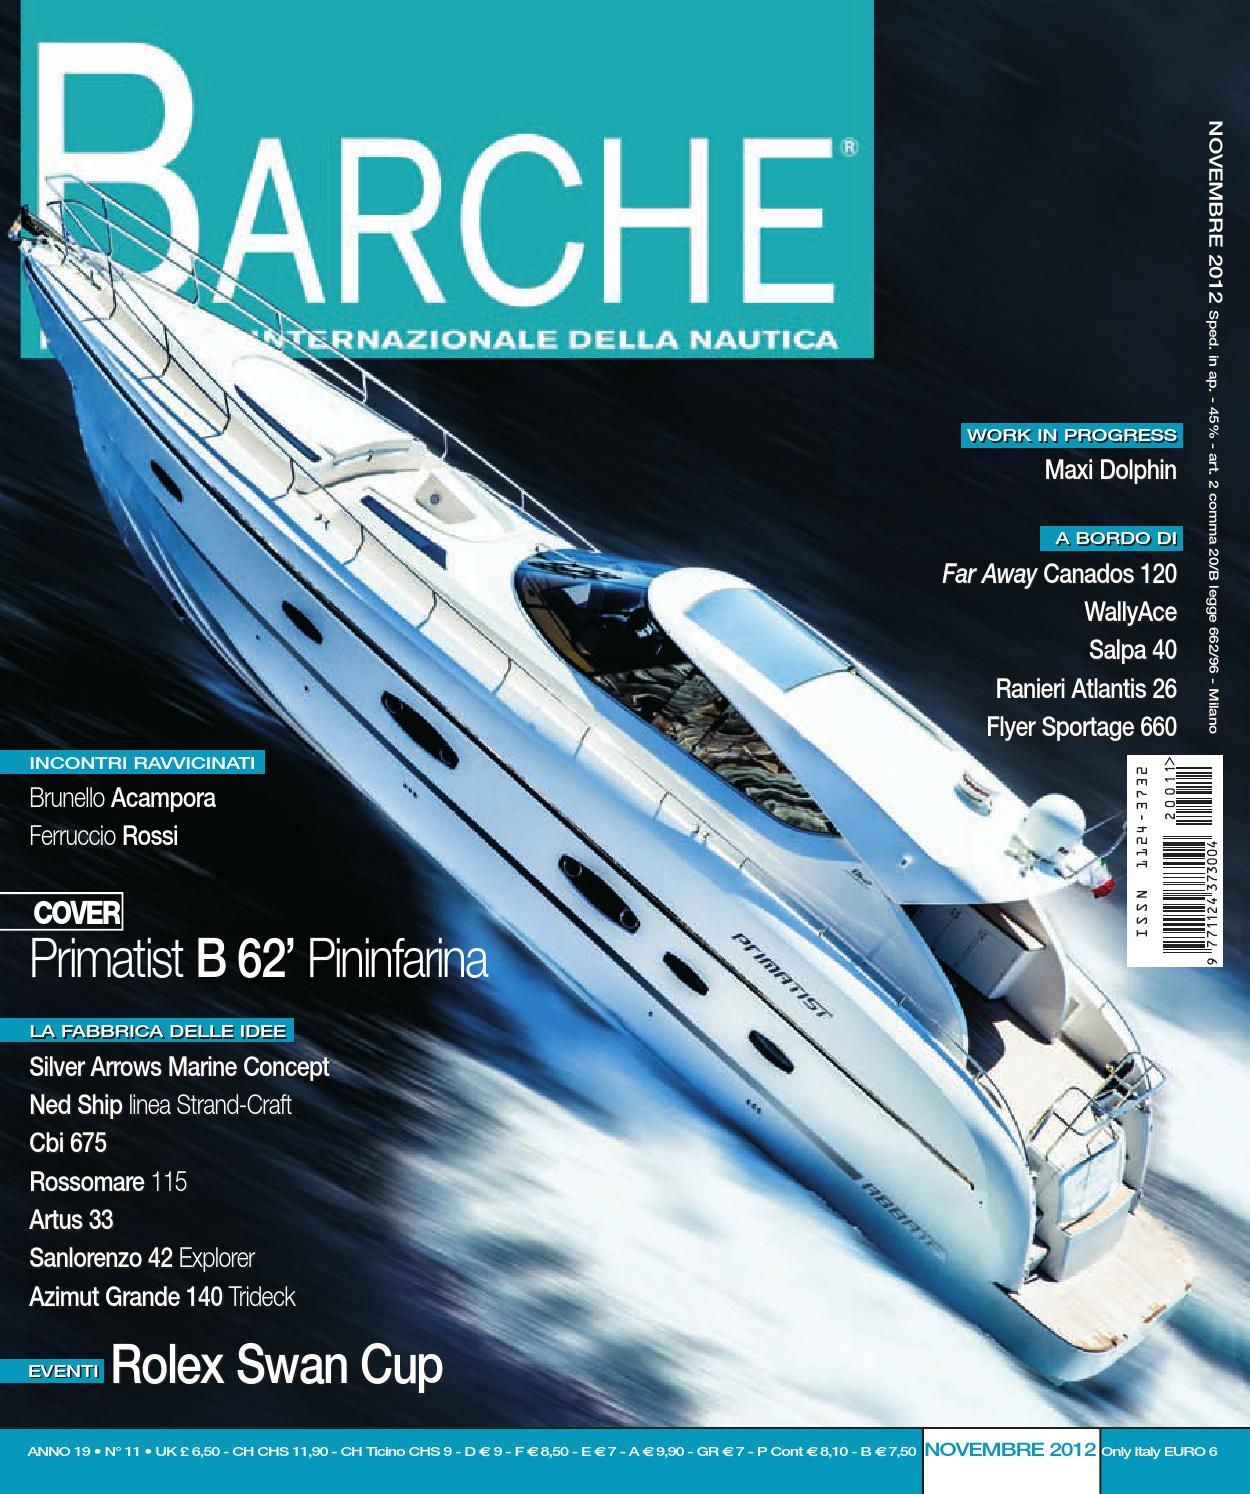 BARCHE November 2012 by INTERNATIONAL SEA PRESS SRL - BARCHE - issuu 07f2fc96278